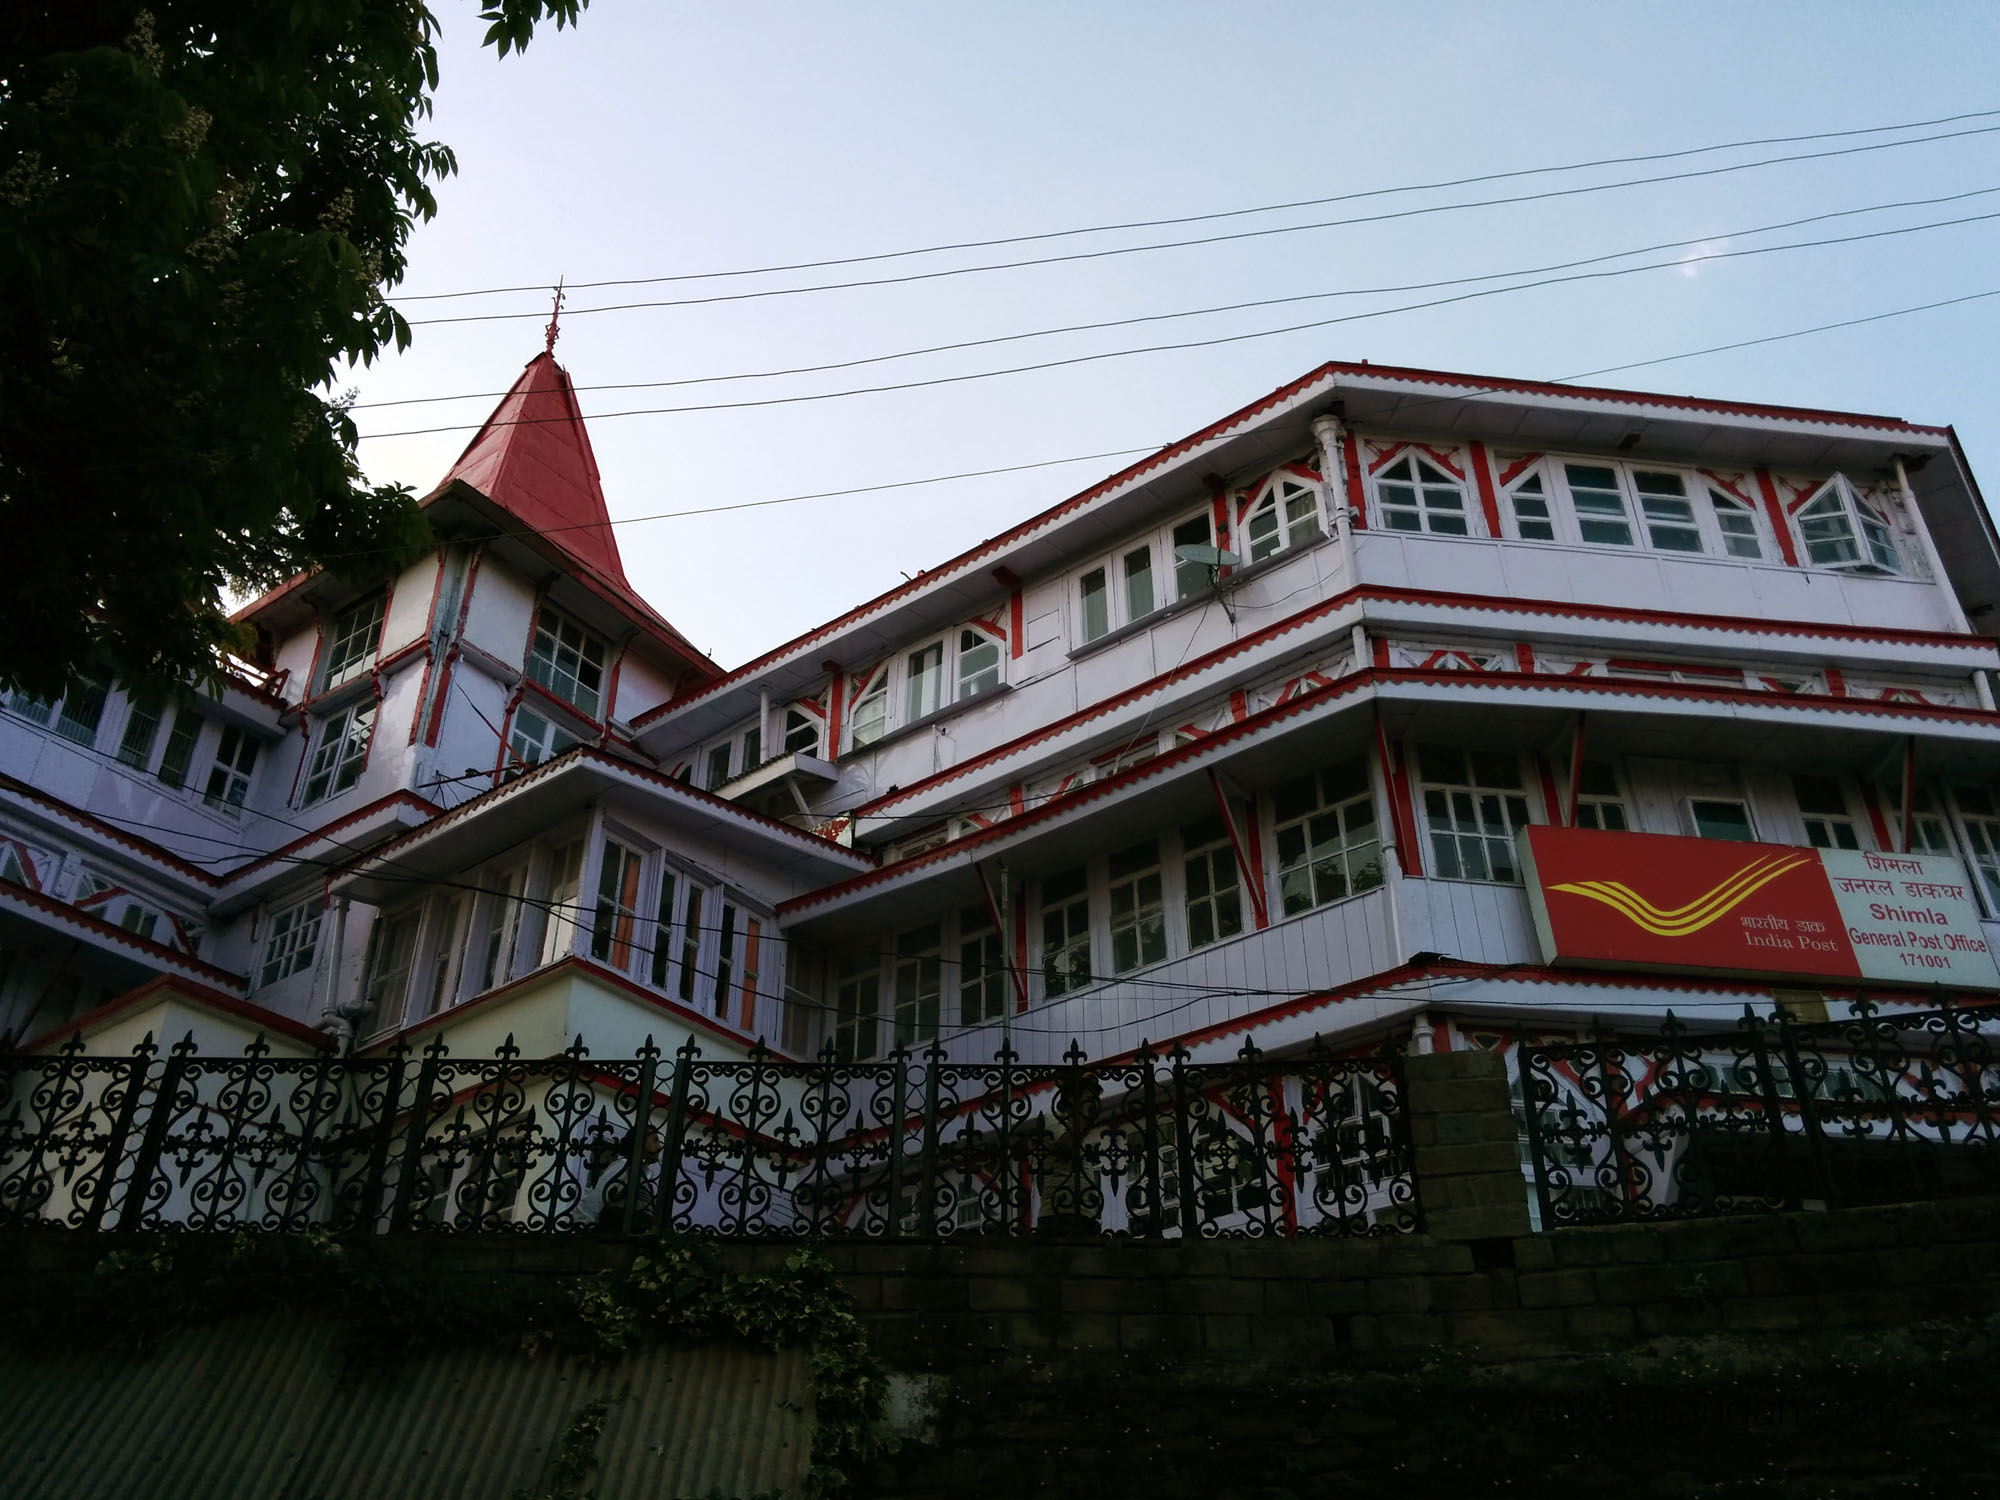 Shimla General Post Office, another colonial era building